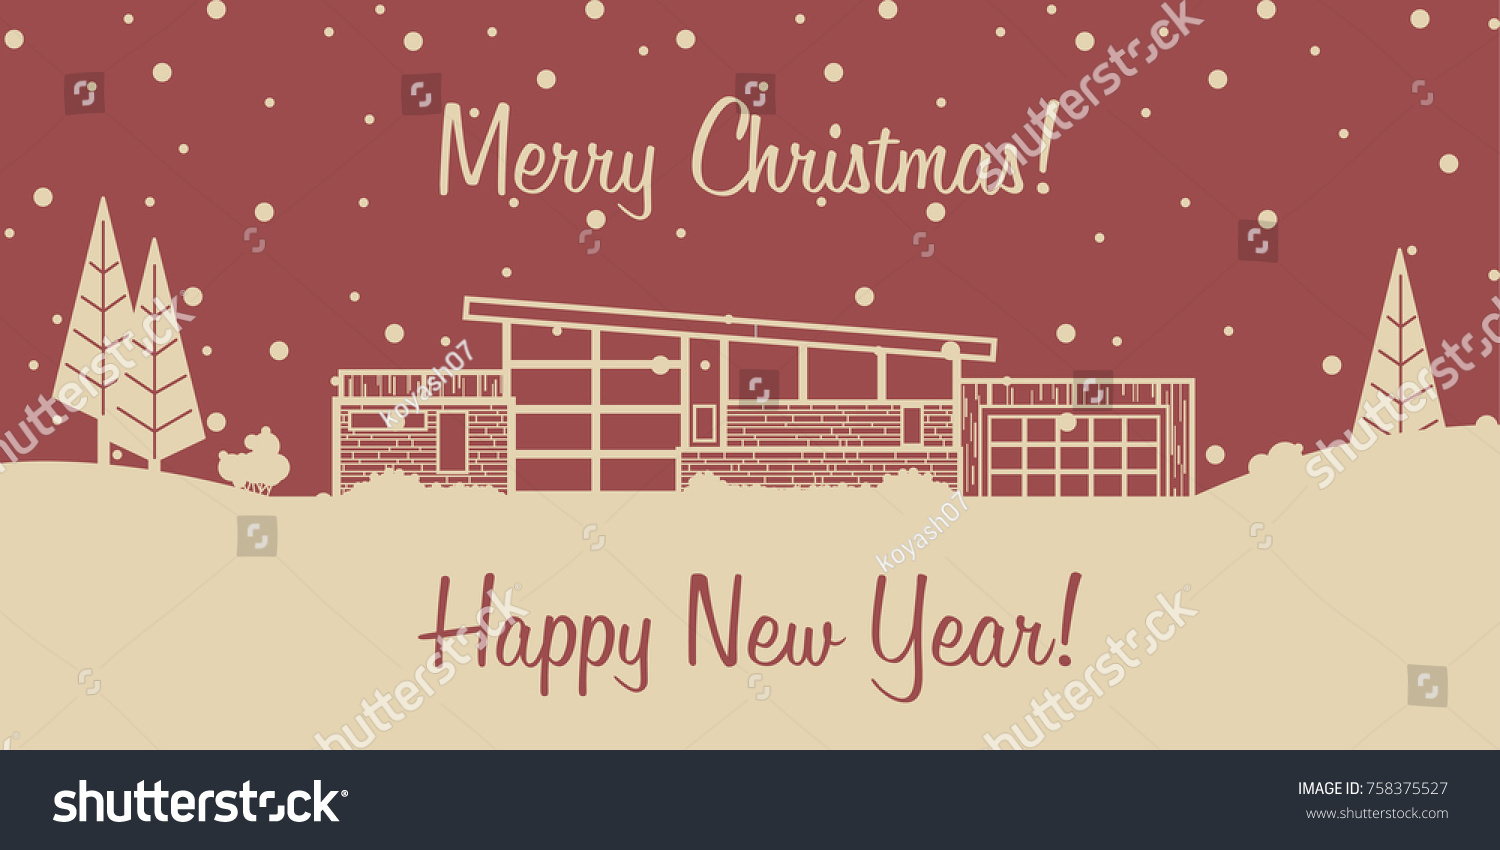 merry christmas and happy new year 2018 vector greeting card stylization under the mid century